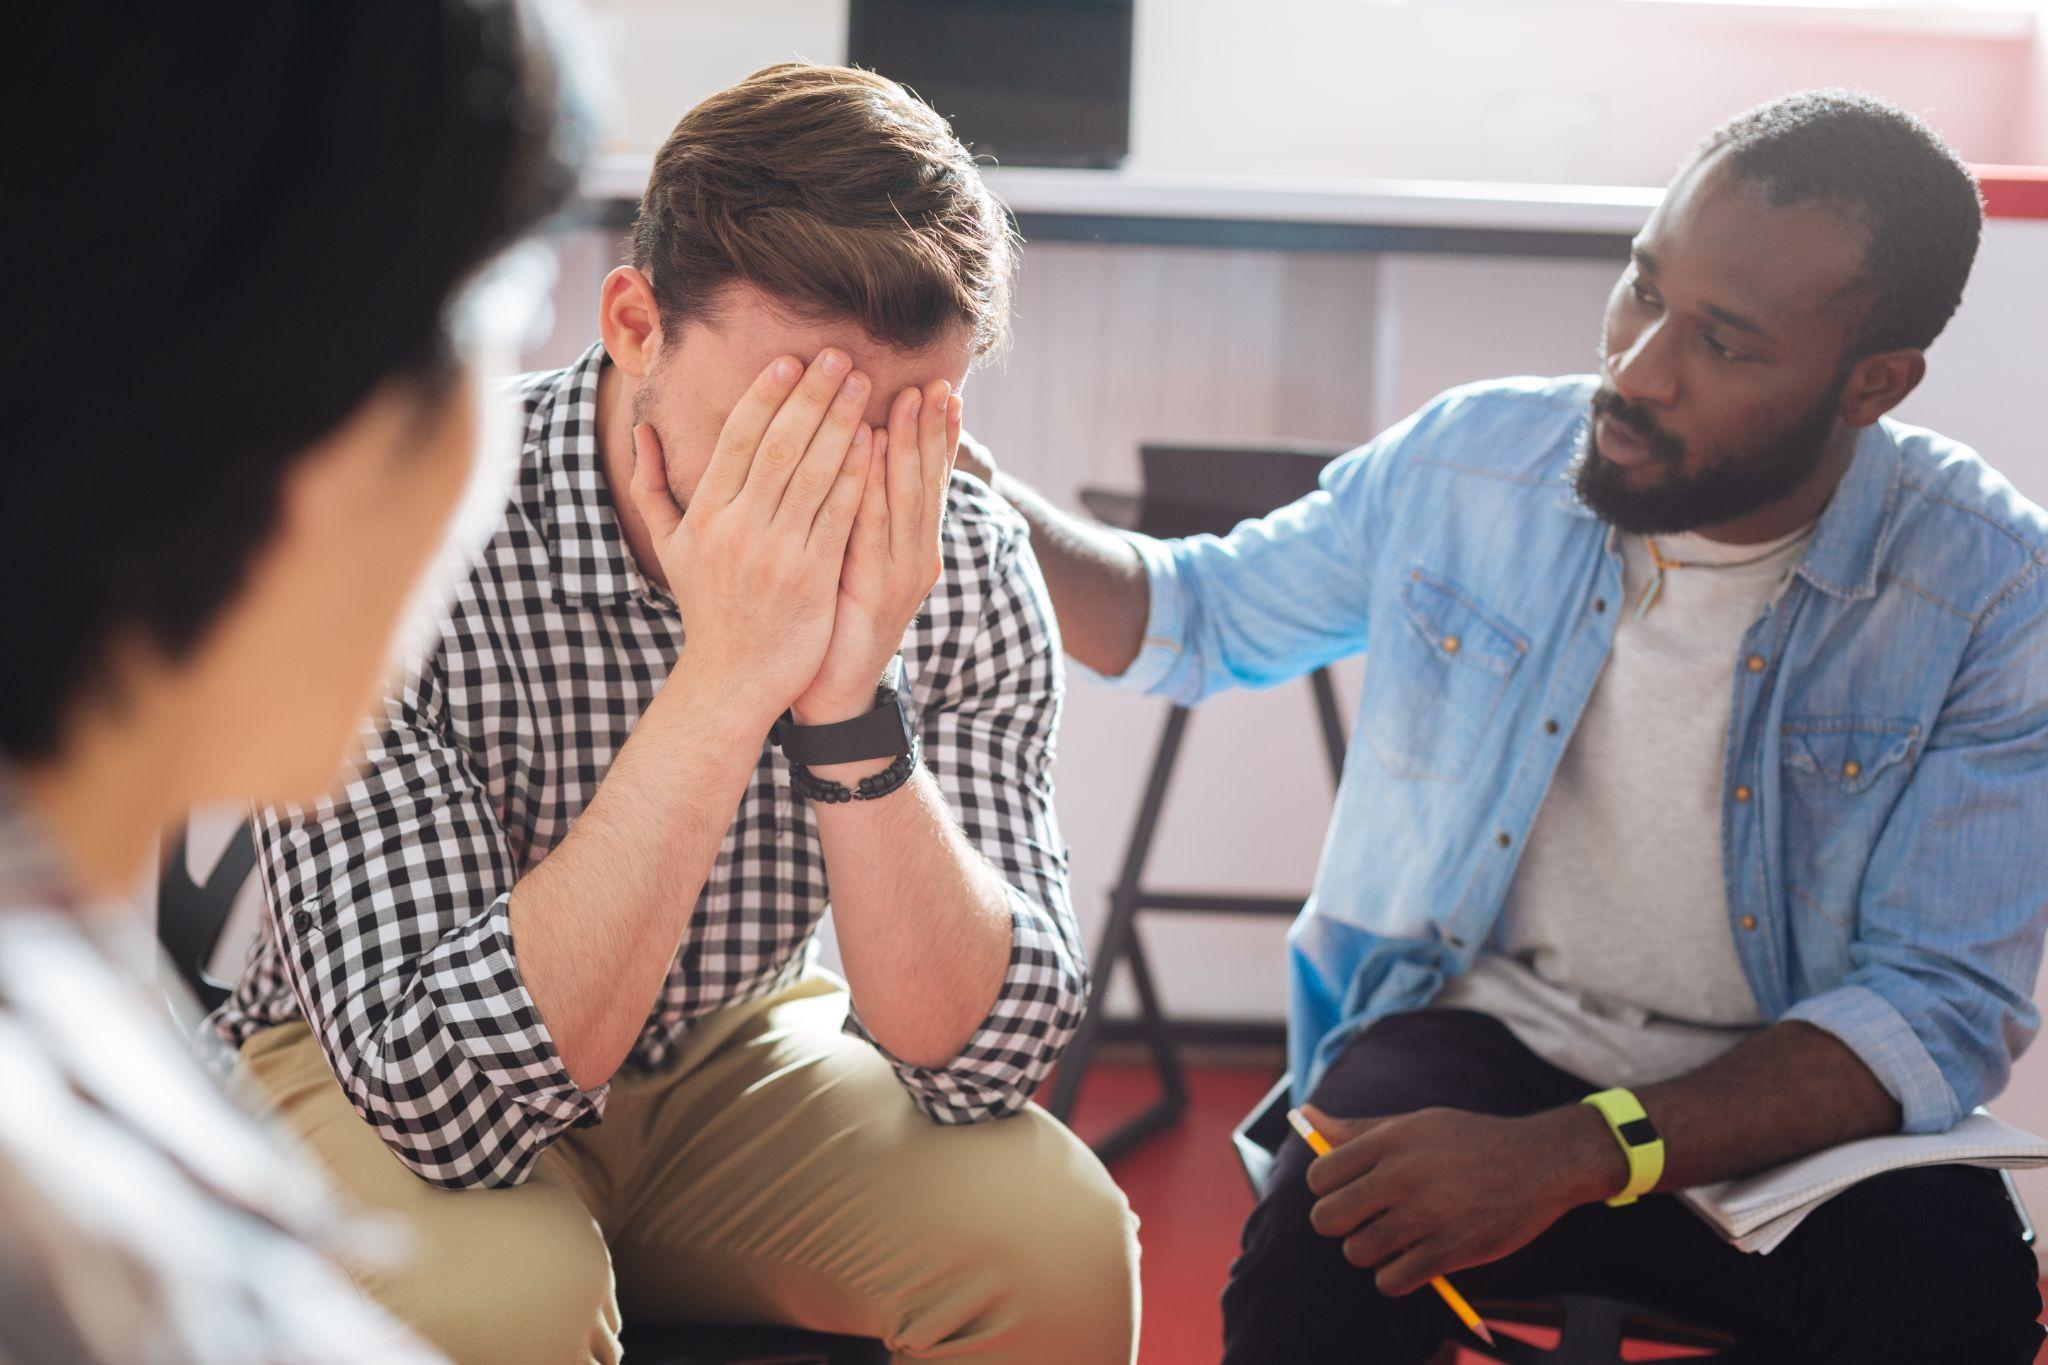 black man putting his hand on the shoulder of a crying person while talking to him